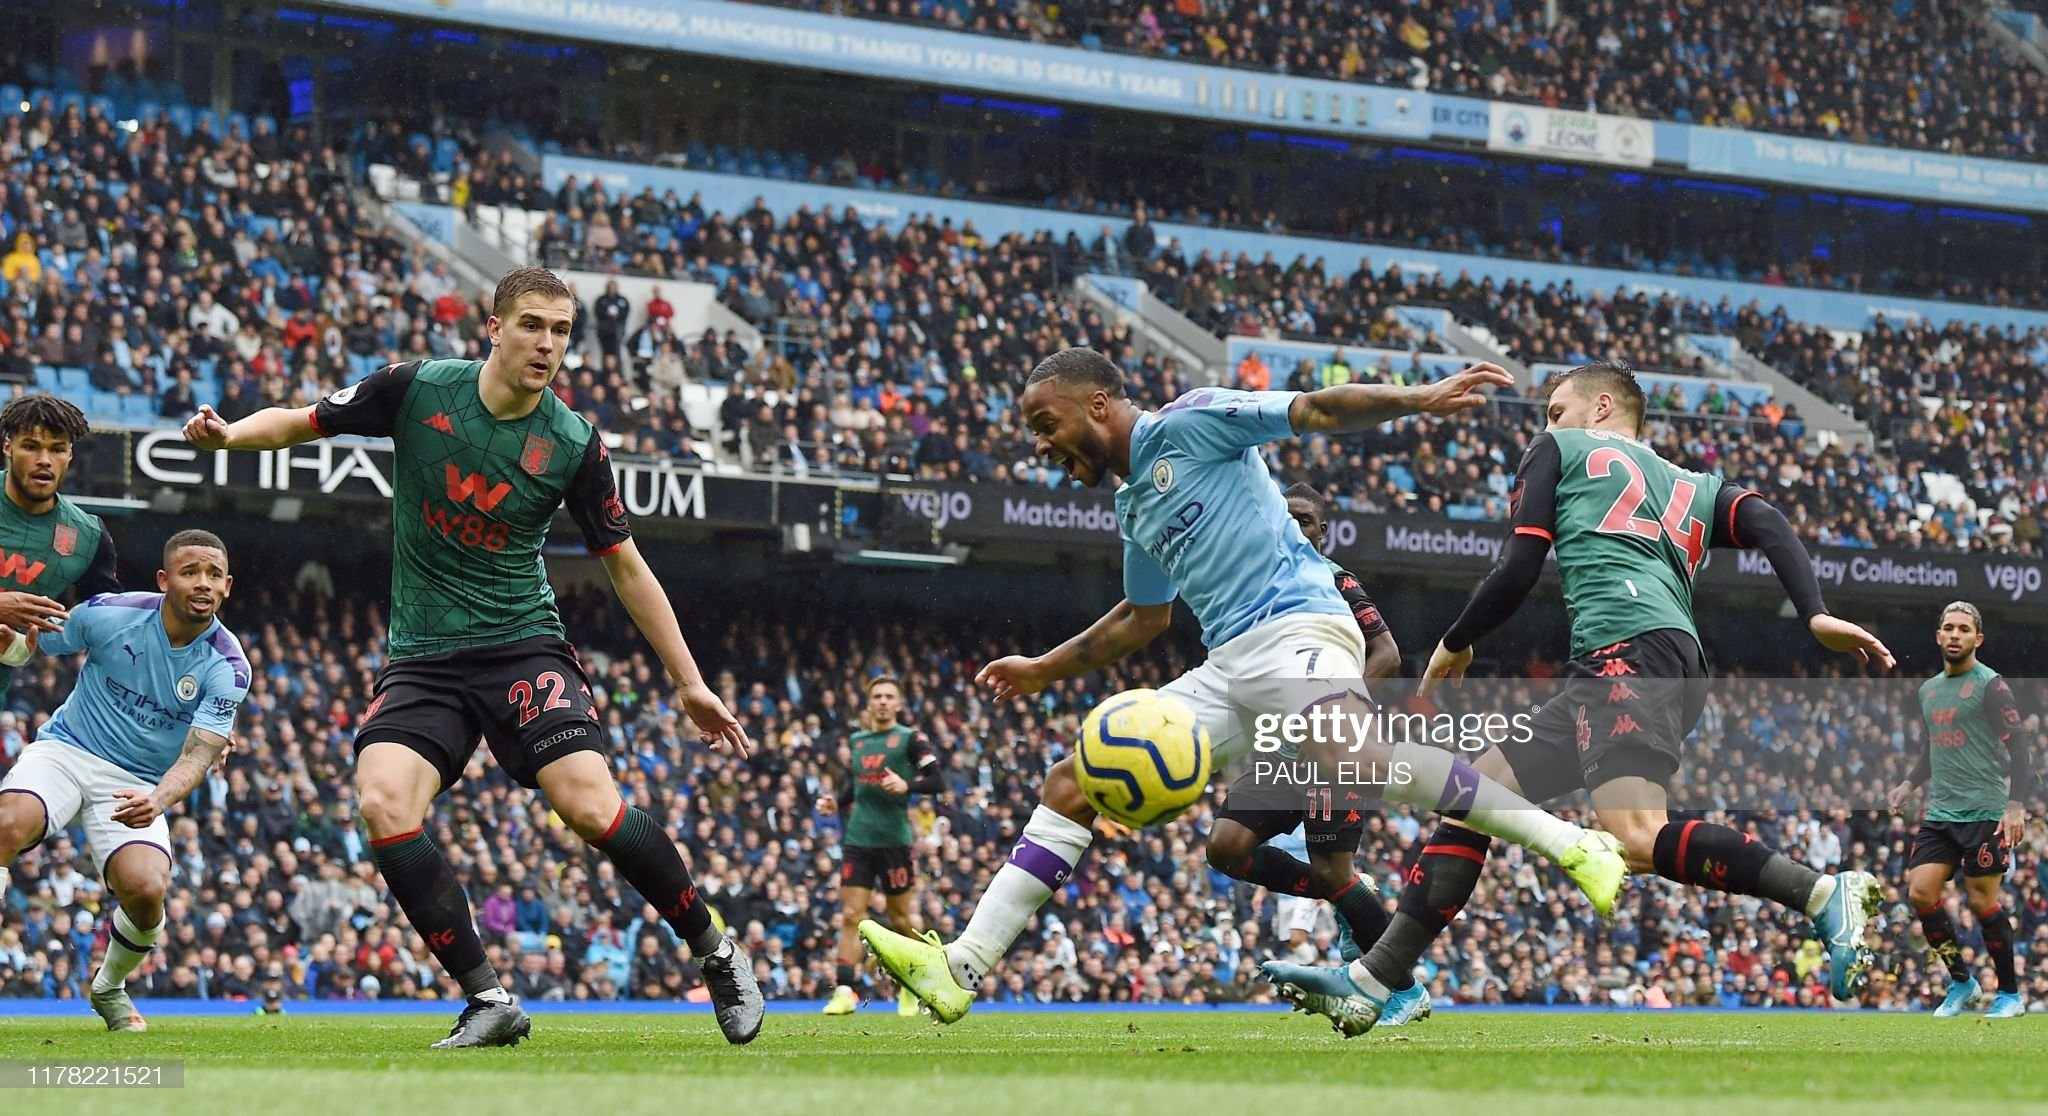 Manchester City vs Aston Villa preview, prediction and odds